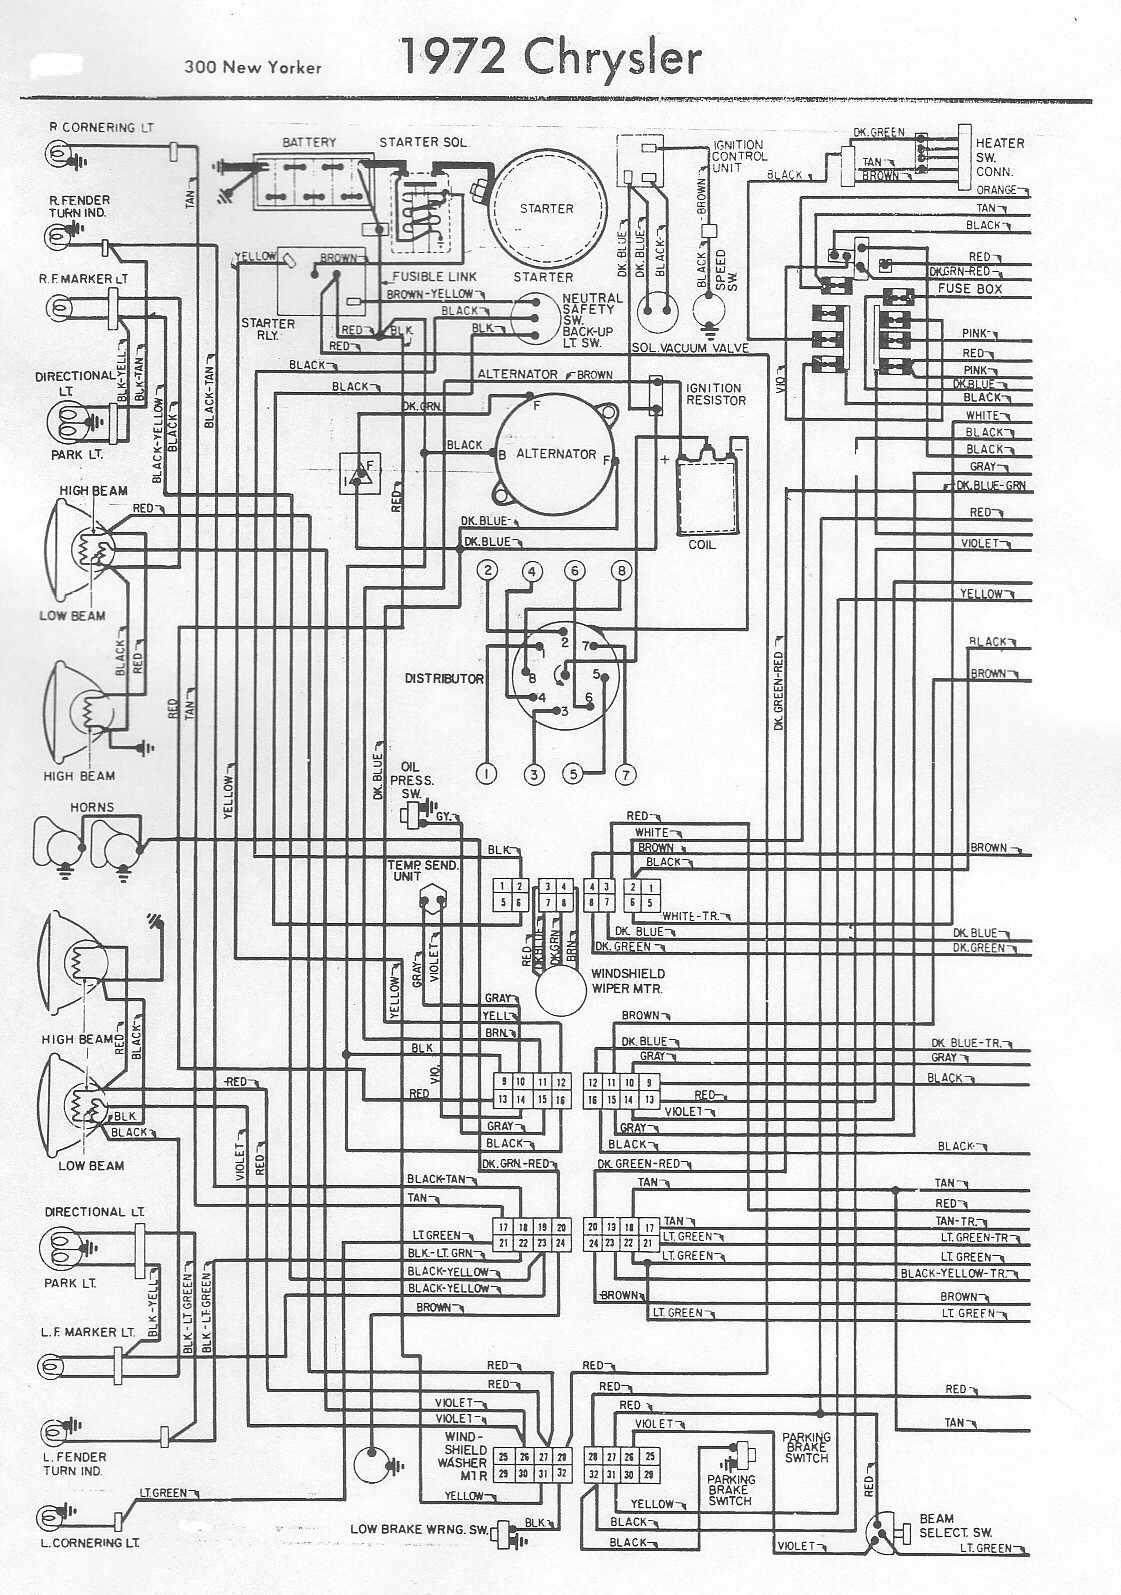 1978 plymouth volare wiring diagrams electrical wiring diagrams rh wiringforall today Plymouth Wiring Diagrams Dash Cluster 1976 plymouth volare wiring diagram